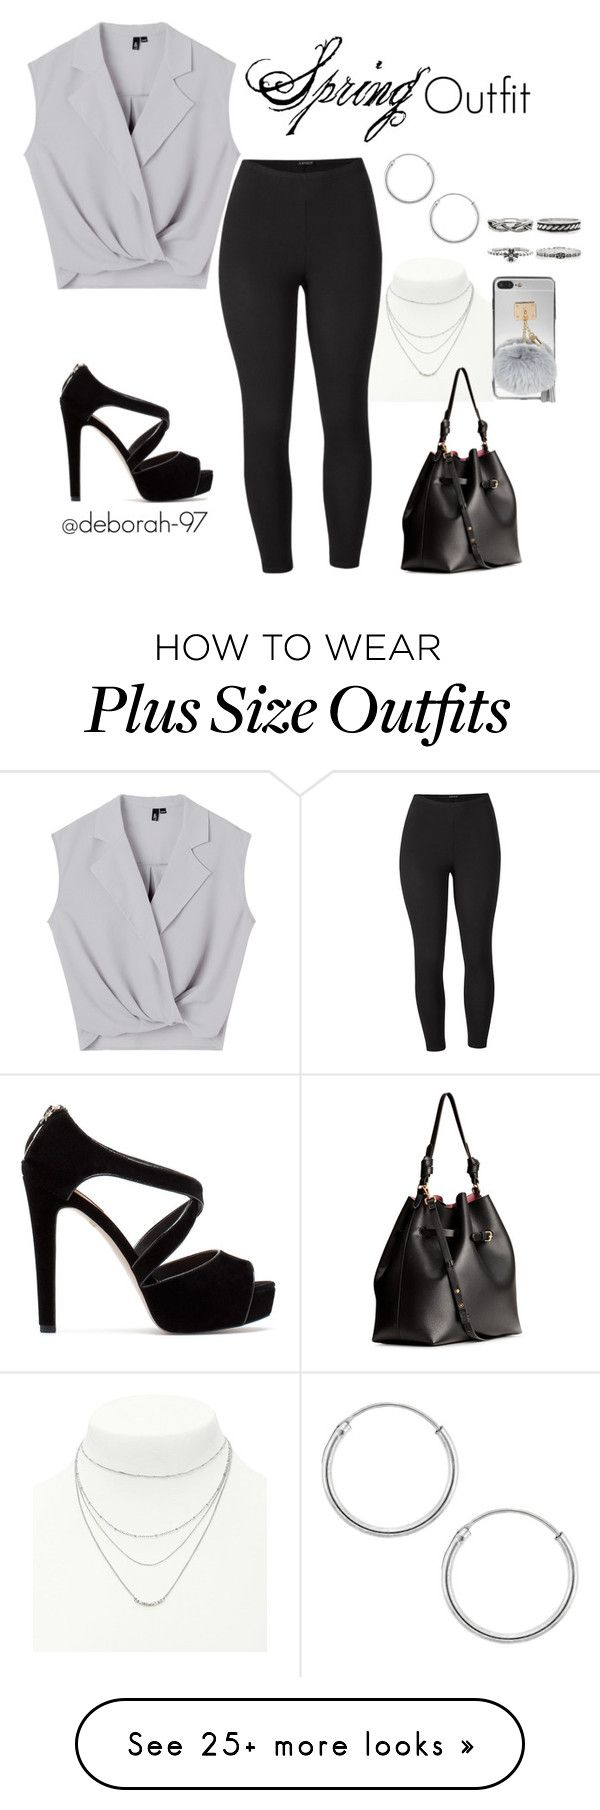 """Spring Outfit #2"" by deborah-97 on Polyvore featuring Sevil Designs, Forever 21, Venus, Pull&Bear, H&M and plus size clothing"